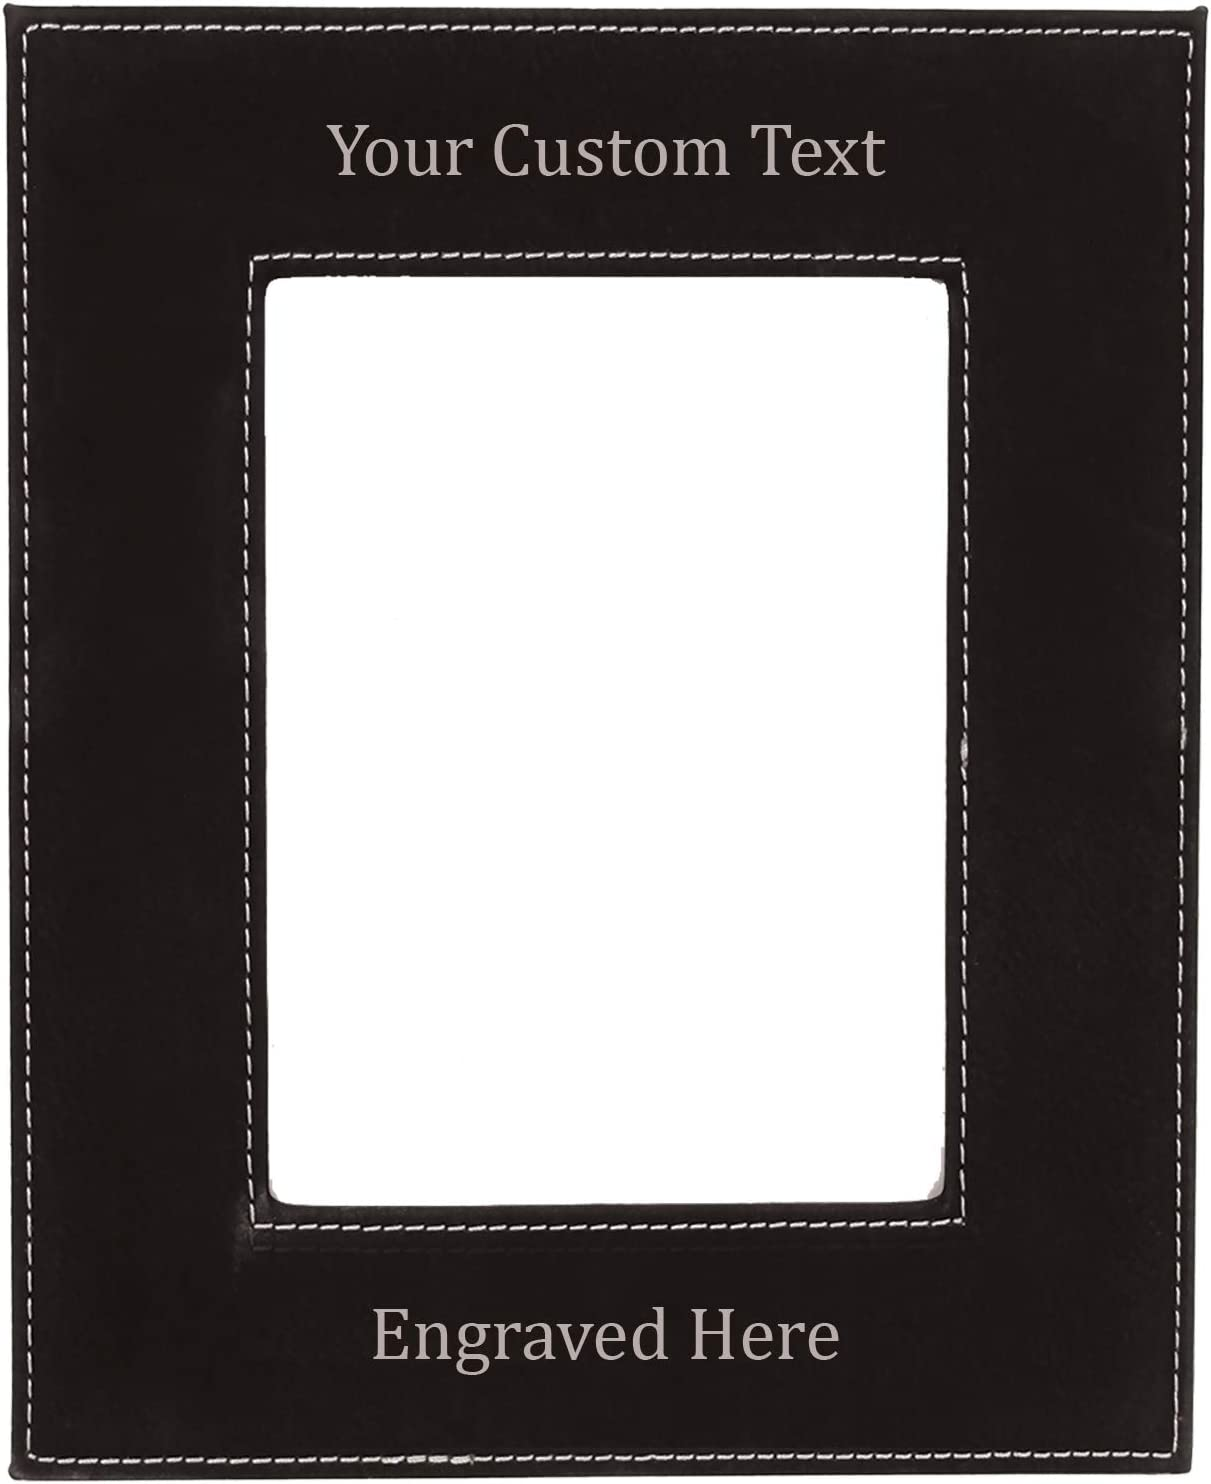 Personalized online shop Picture Frame - Custom Engraved Photo Leatherette F Cash special price